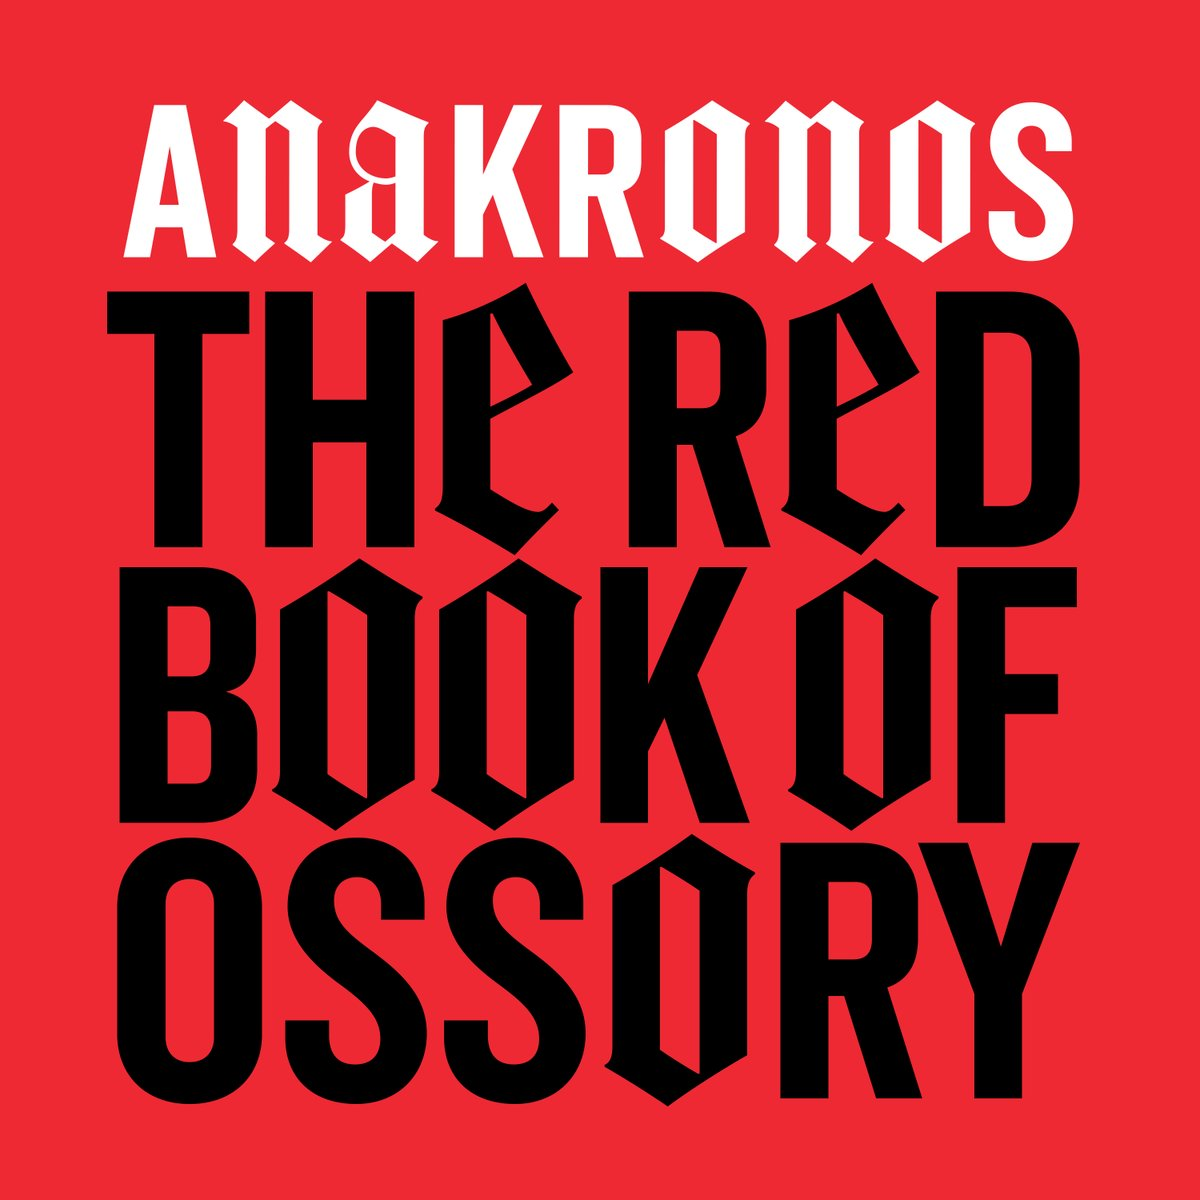 Heresy Records On Twitter Tonight On Blue Of The Night With Bernard Clarke Selections From The Red Book Of Ossory By Anakronos 18 6 20 At 23 35 Irish Time 6 35 Pm Est Https T Co K4l4aij08h Https T Co Lxeygwjddy